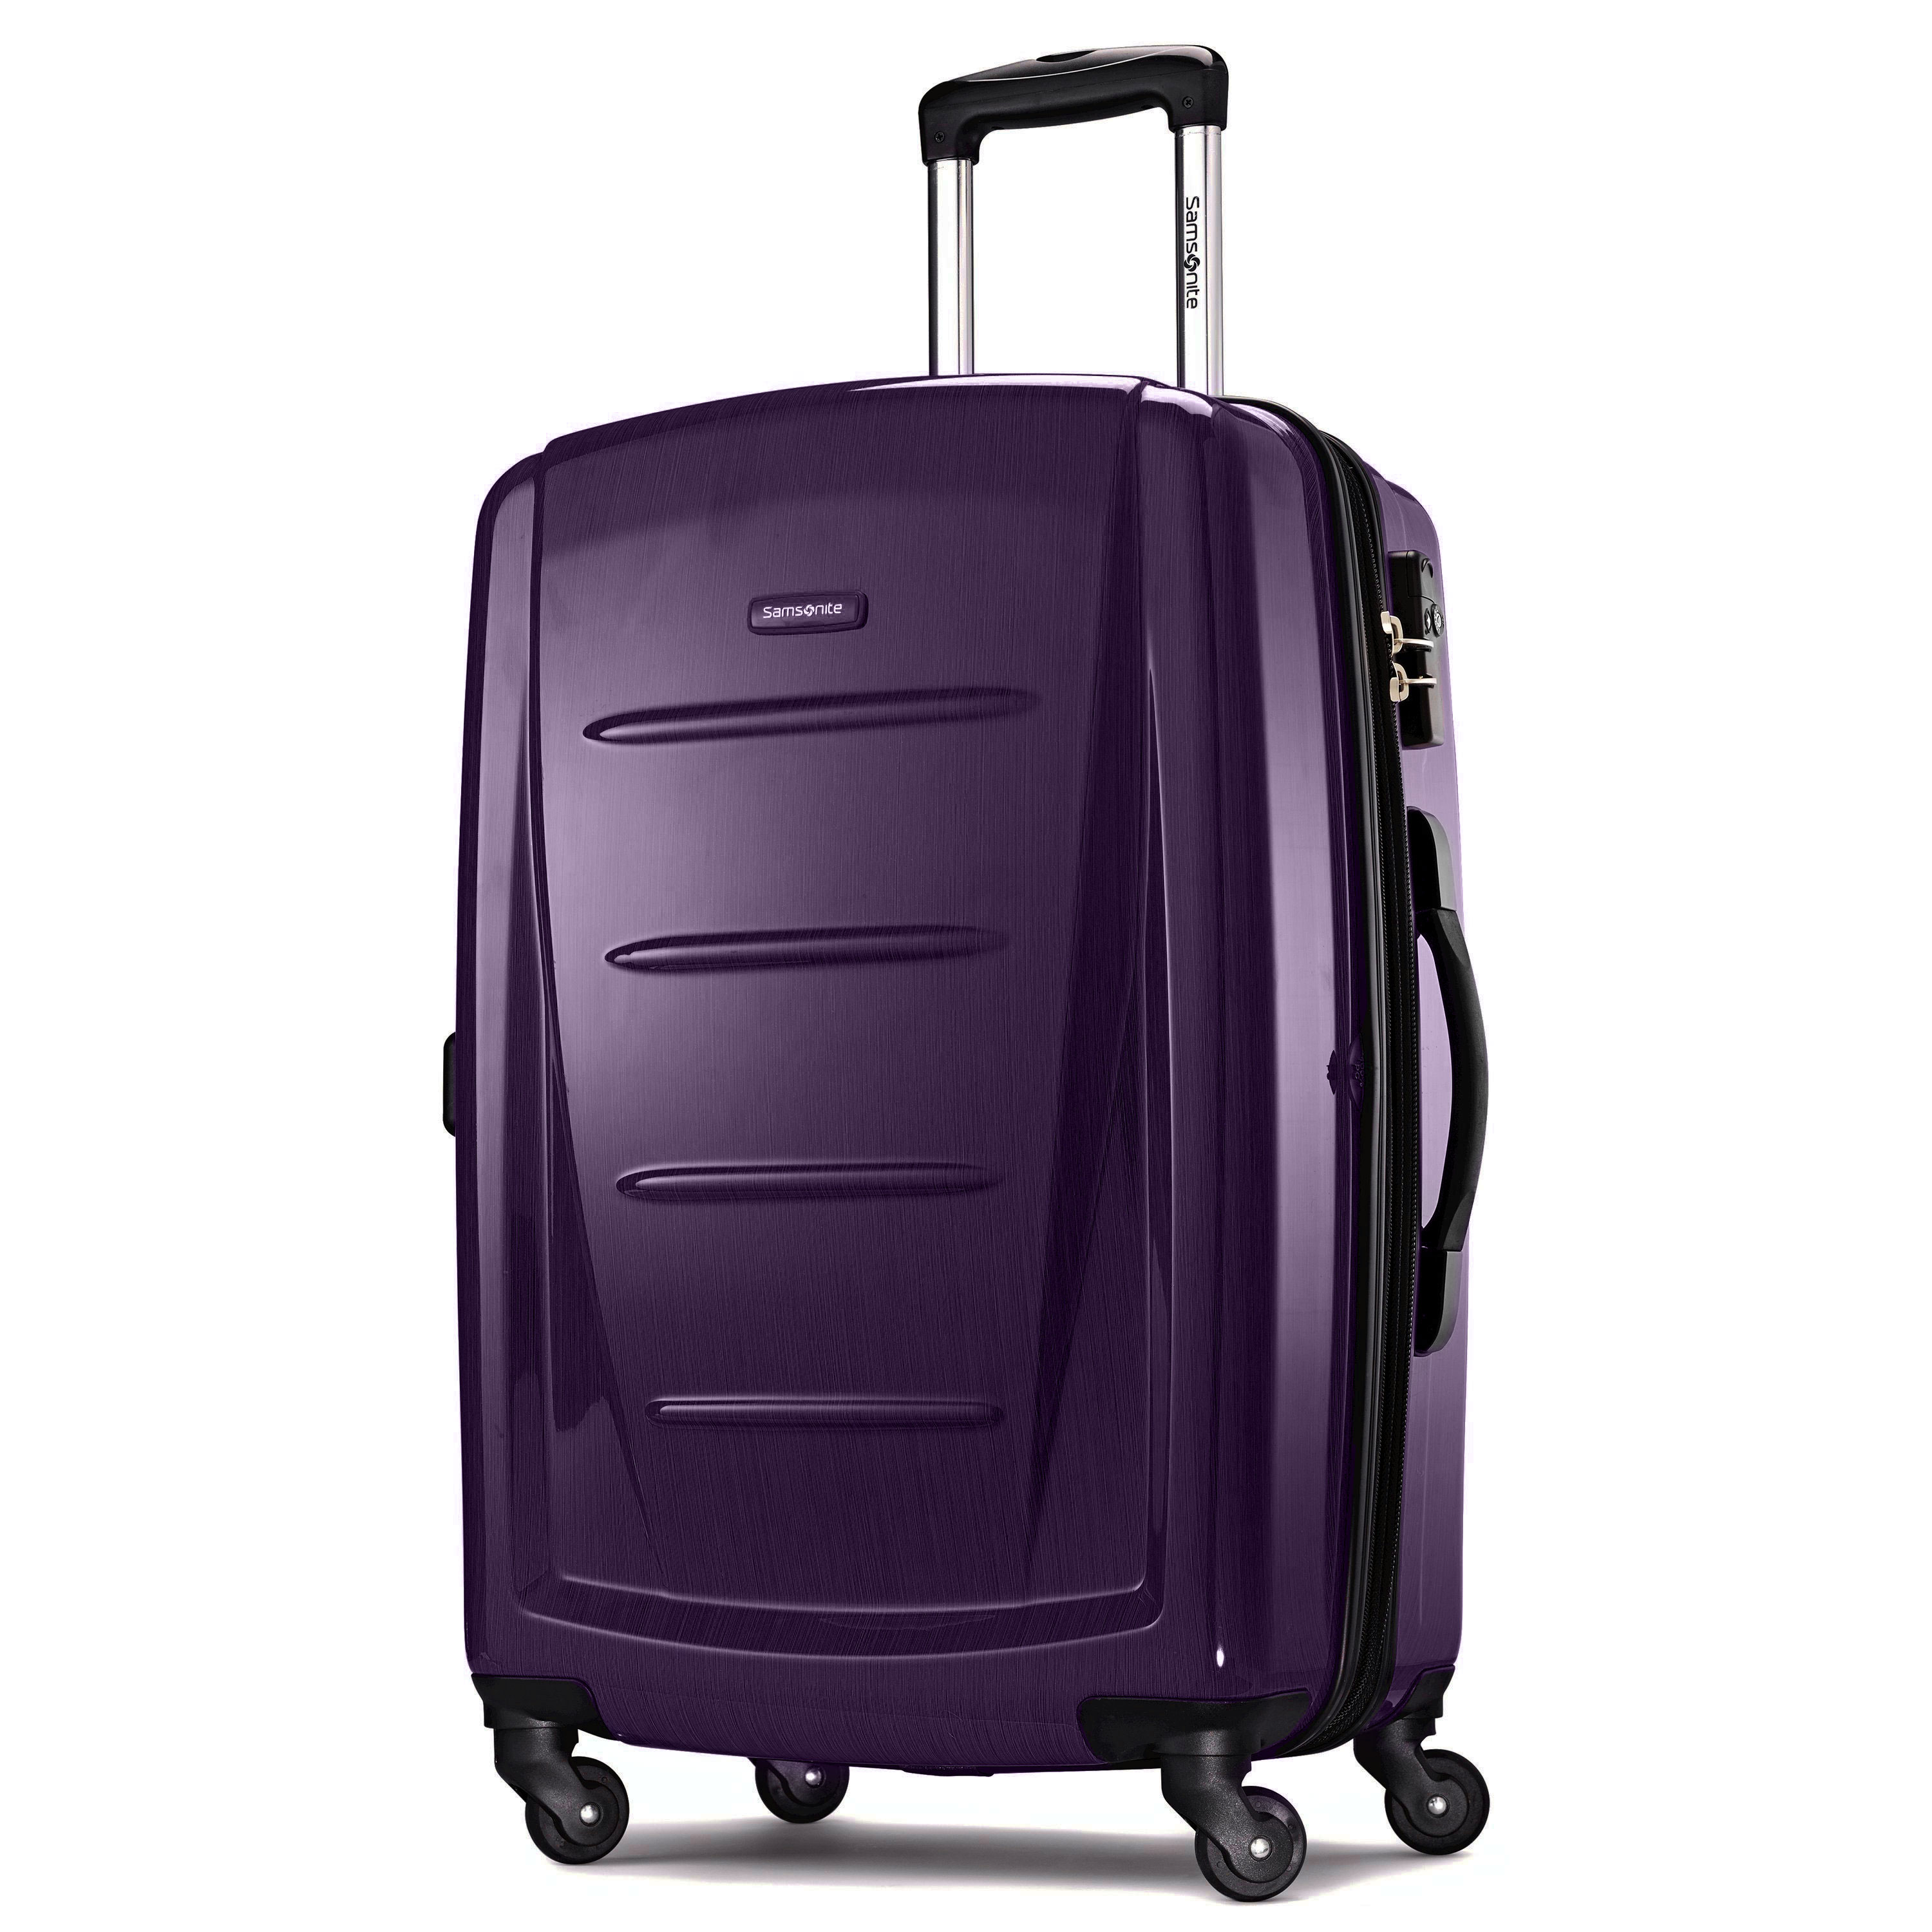 Samsonite-Winfield-2-Fashion-Spinner-Luggage thumbnail 45